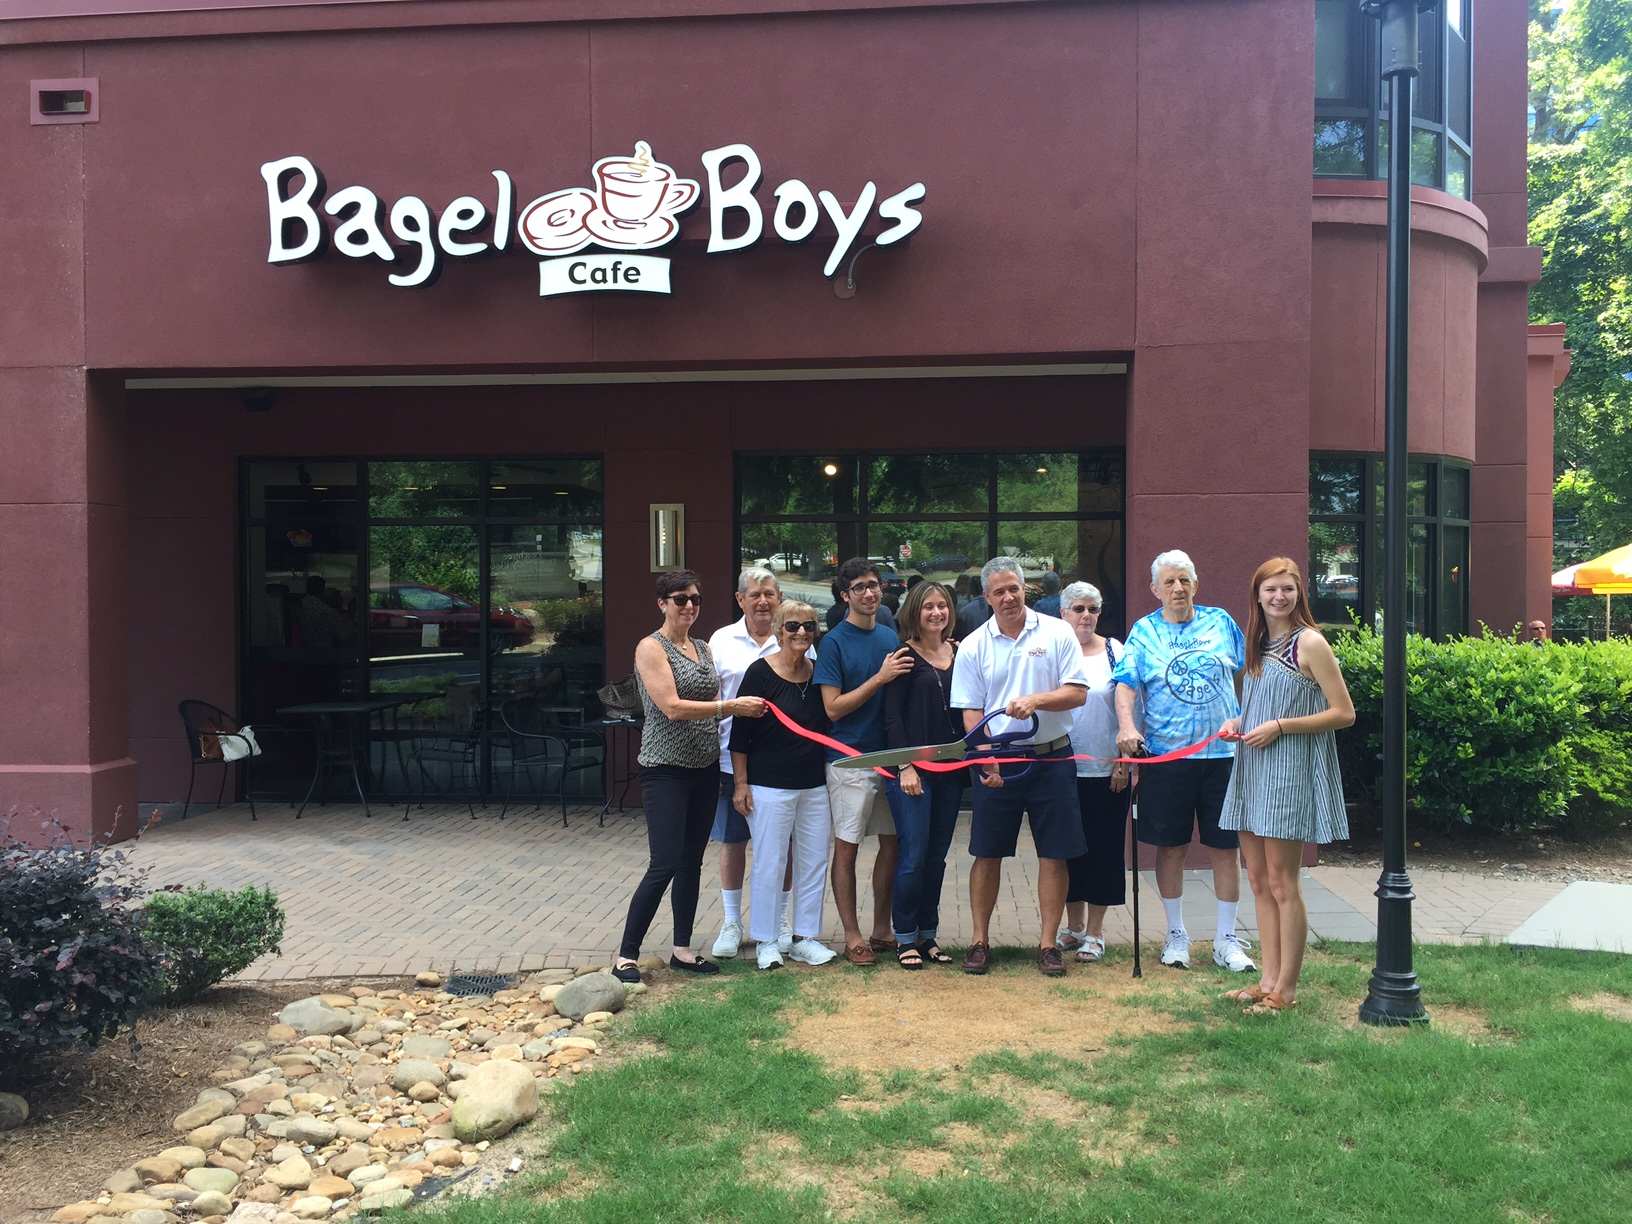 Bagel Boys Cafe - Perimeter, LLC